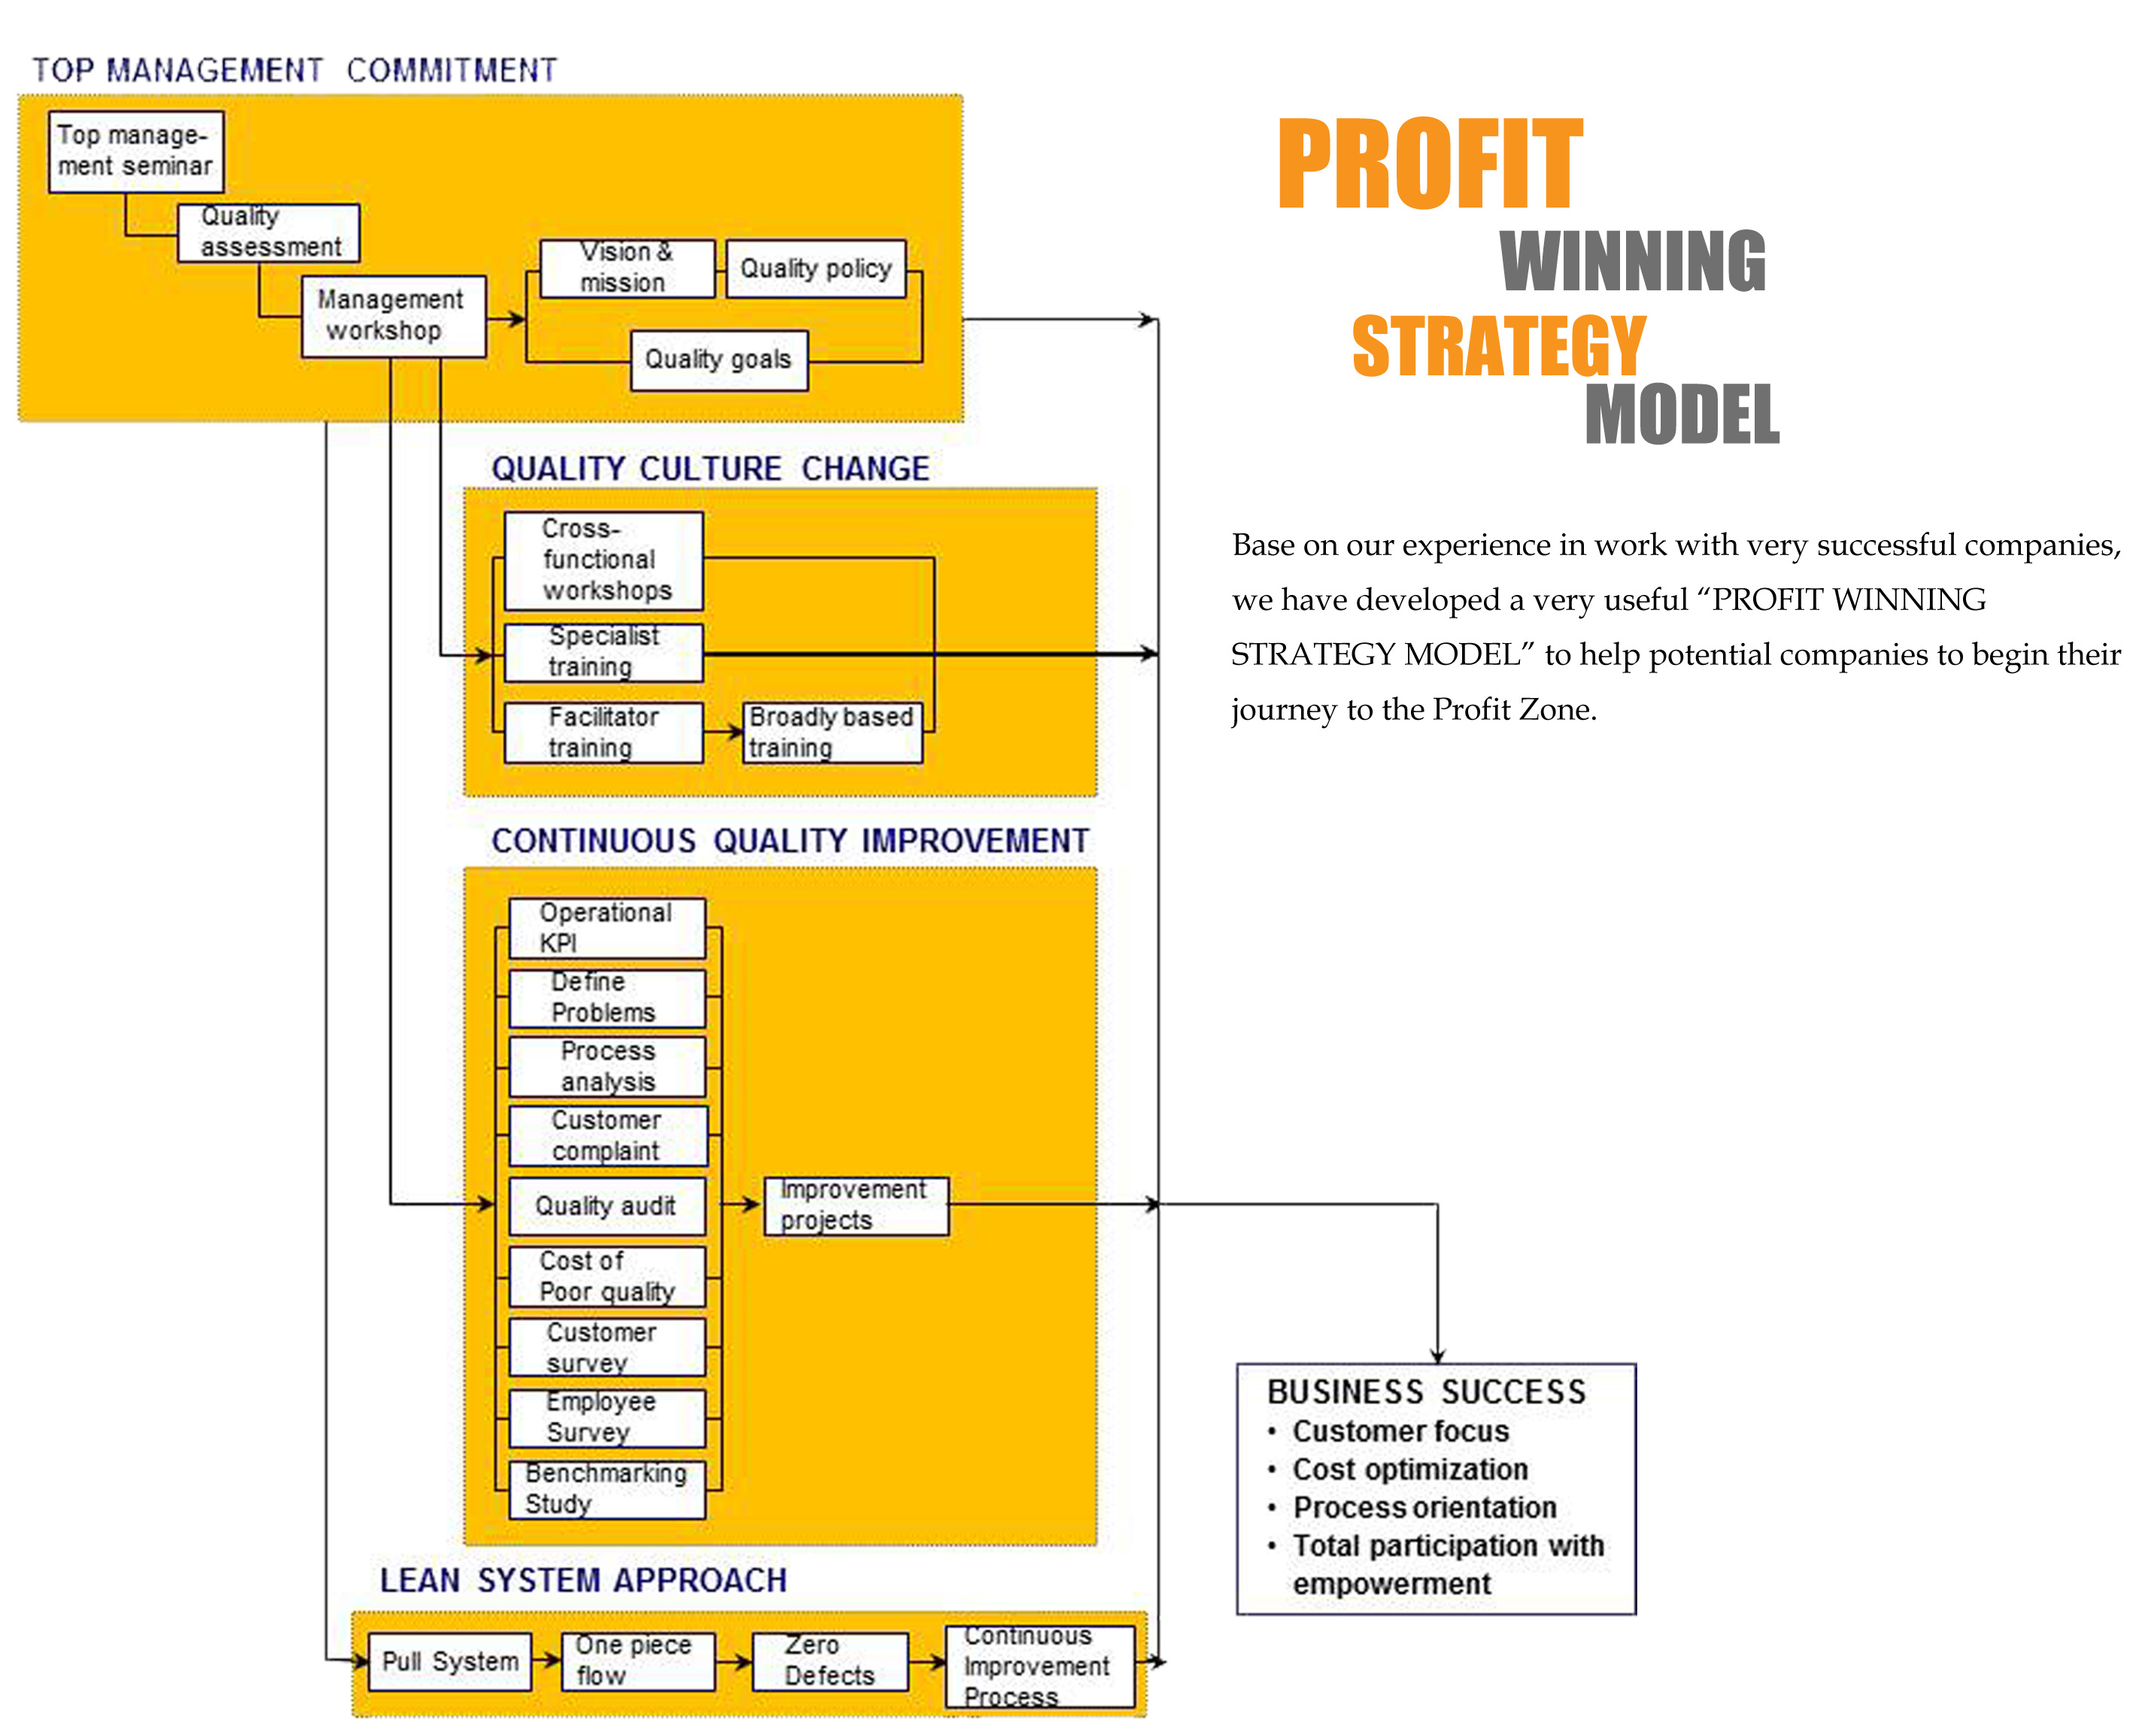 Profit Winning Strategy Model